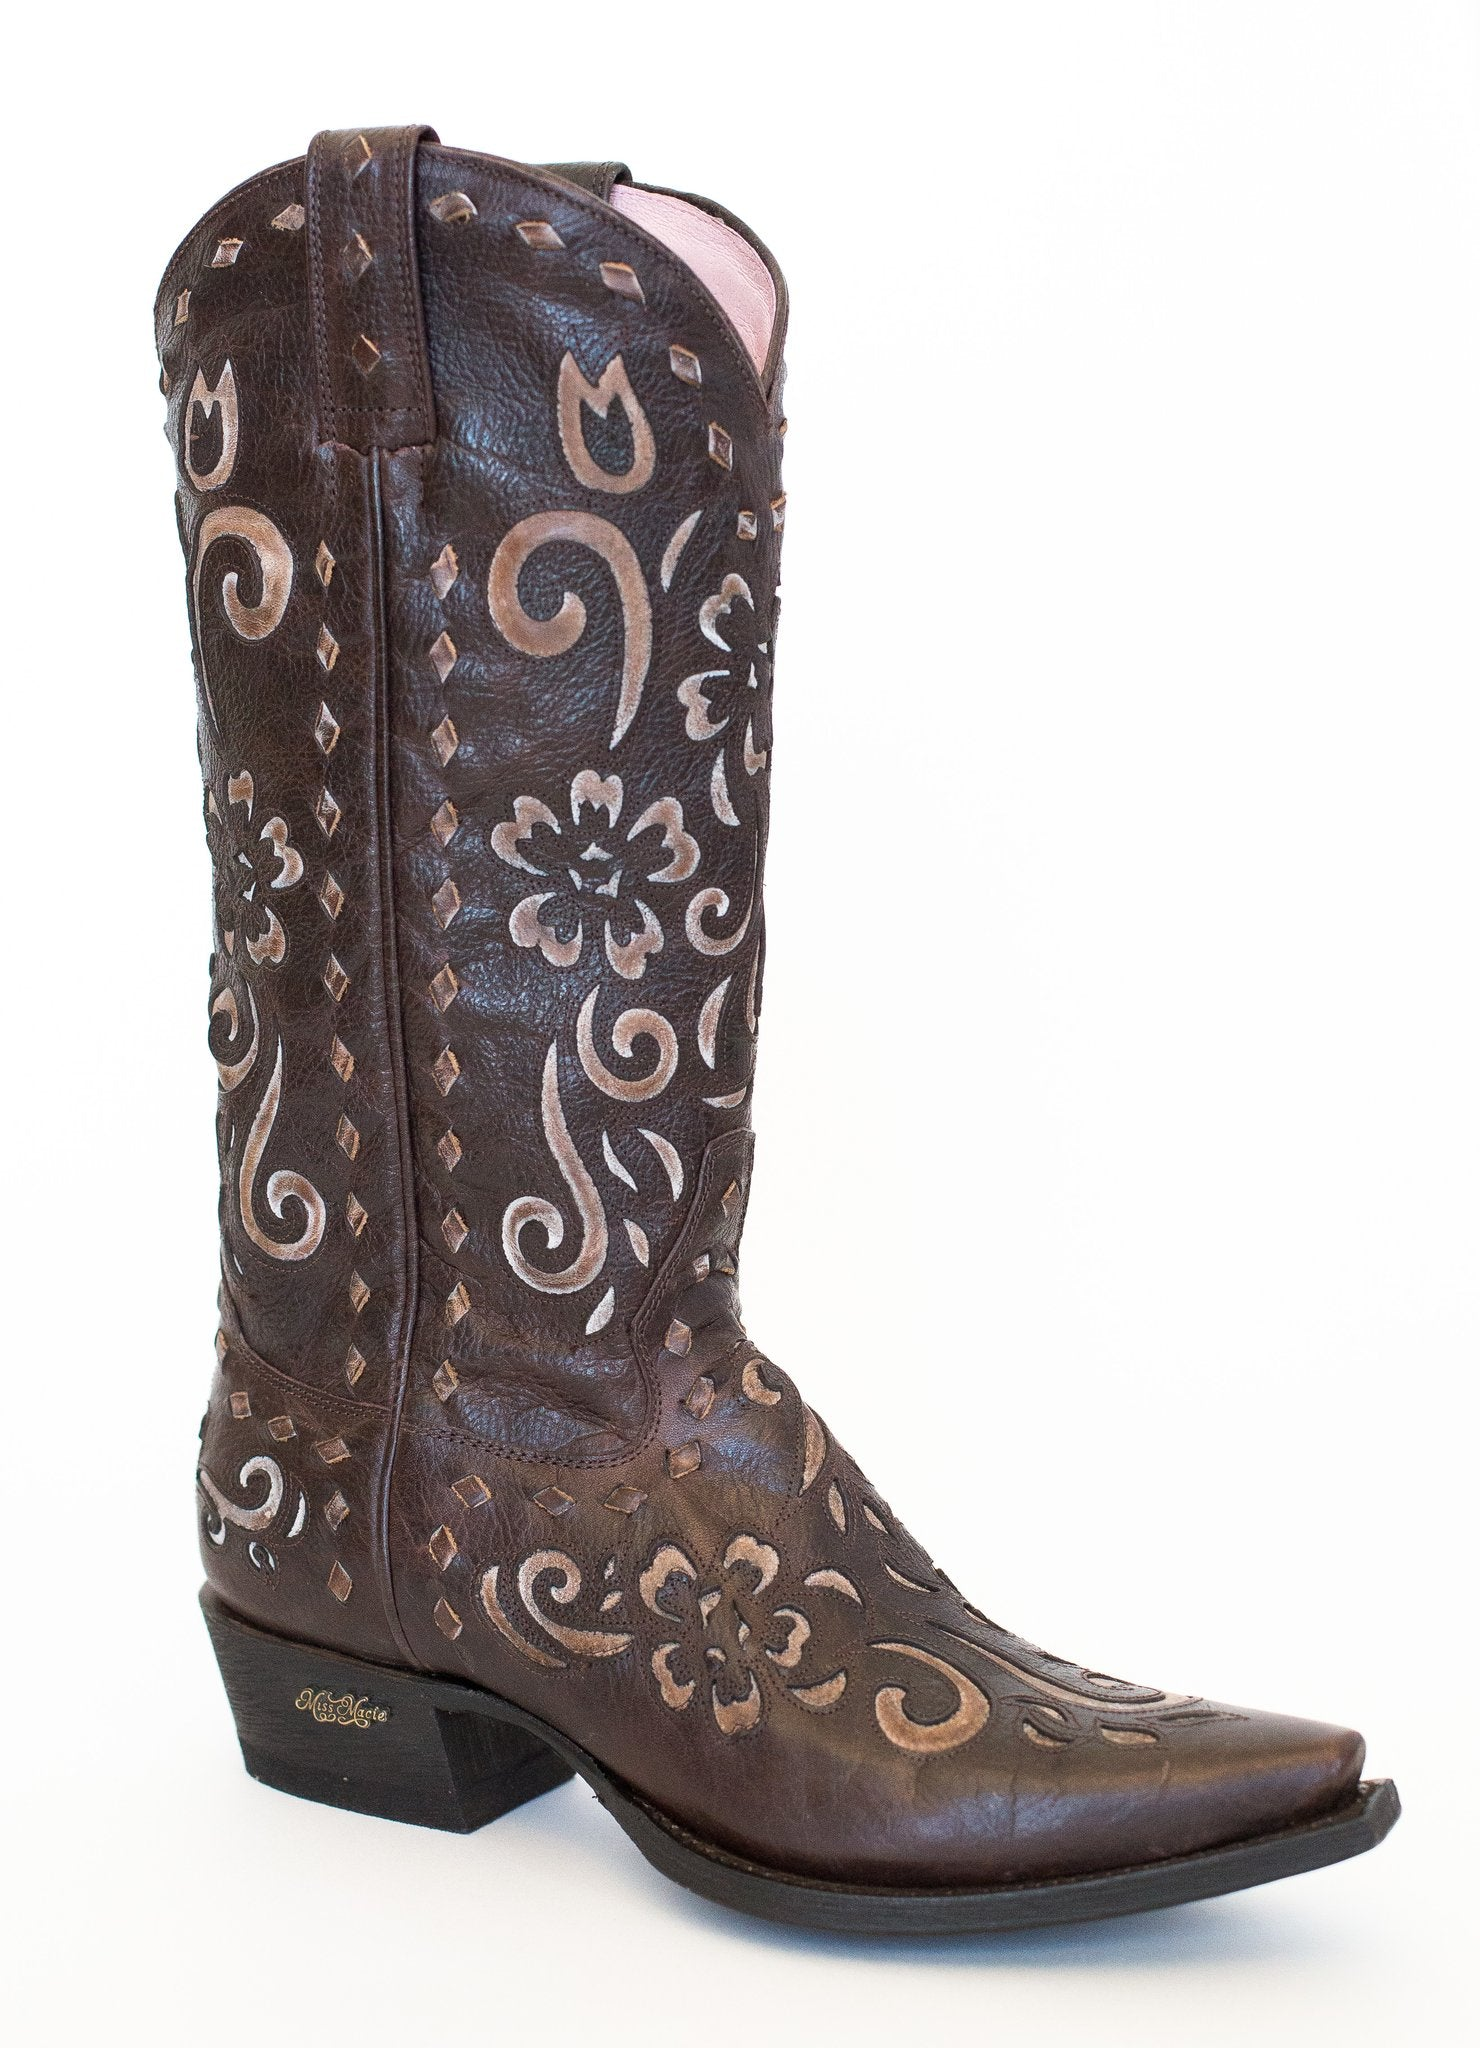 Women's Miss Macie Southern Grace Boot #U6001-02